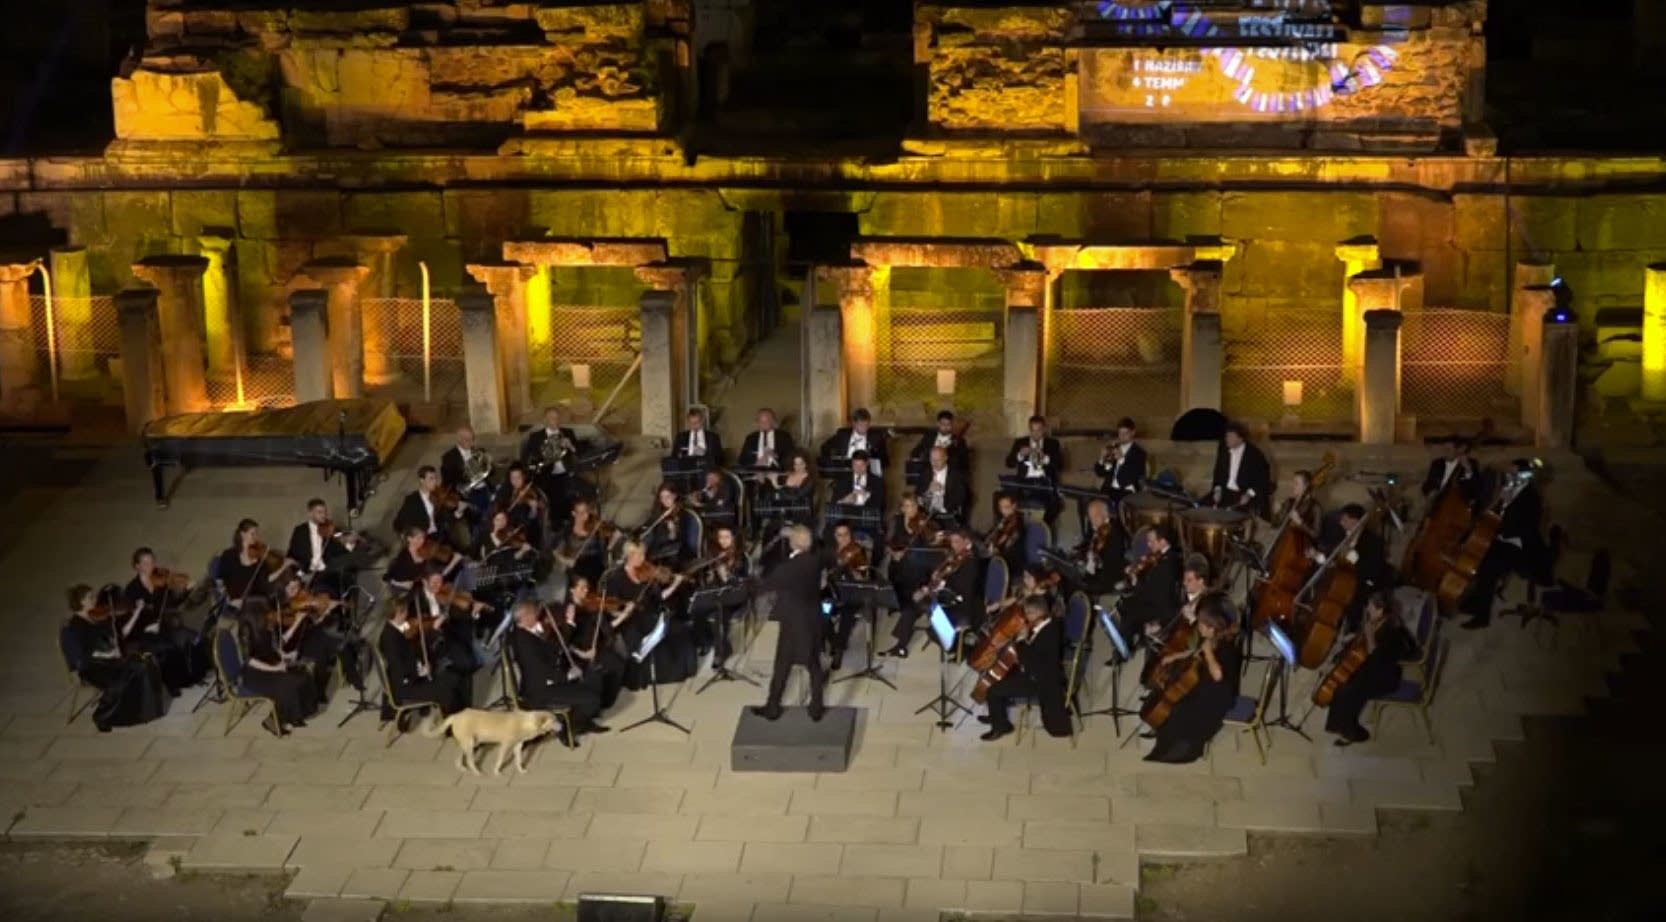 Dog walks onstage during orchestral concert in Turkey